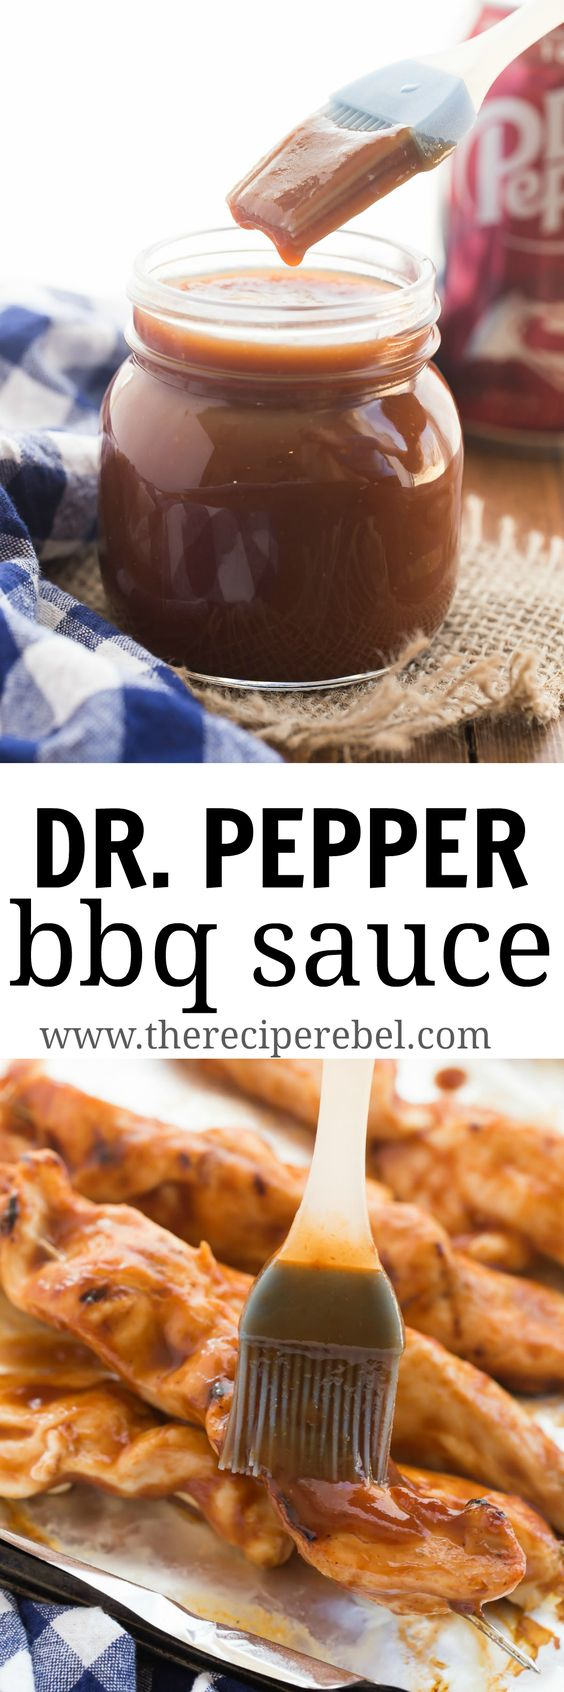 bbq sauces make your dr pepper bbq sauce beef barbecue sauce dr pepper ...